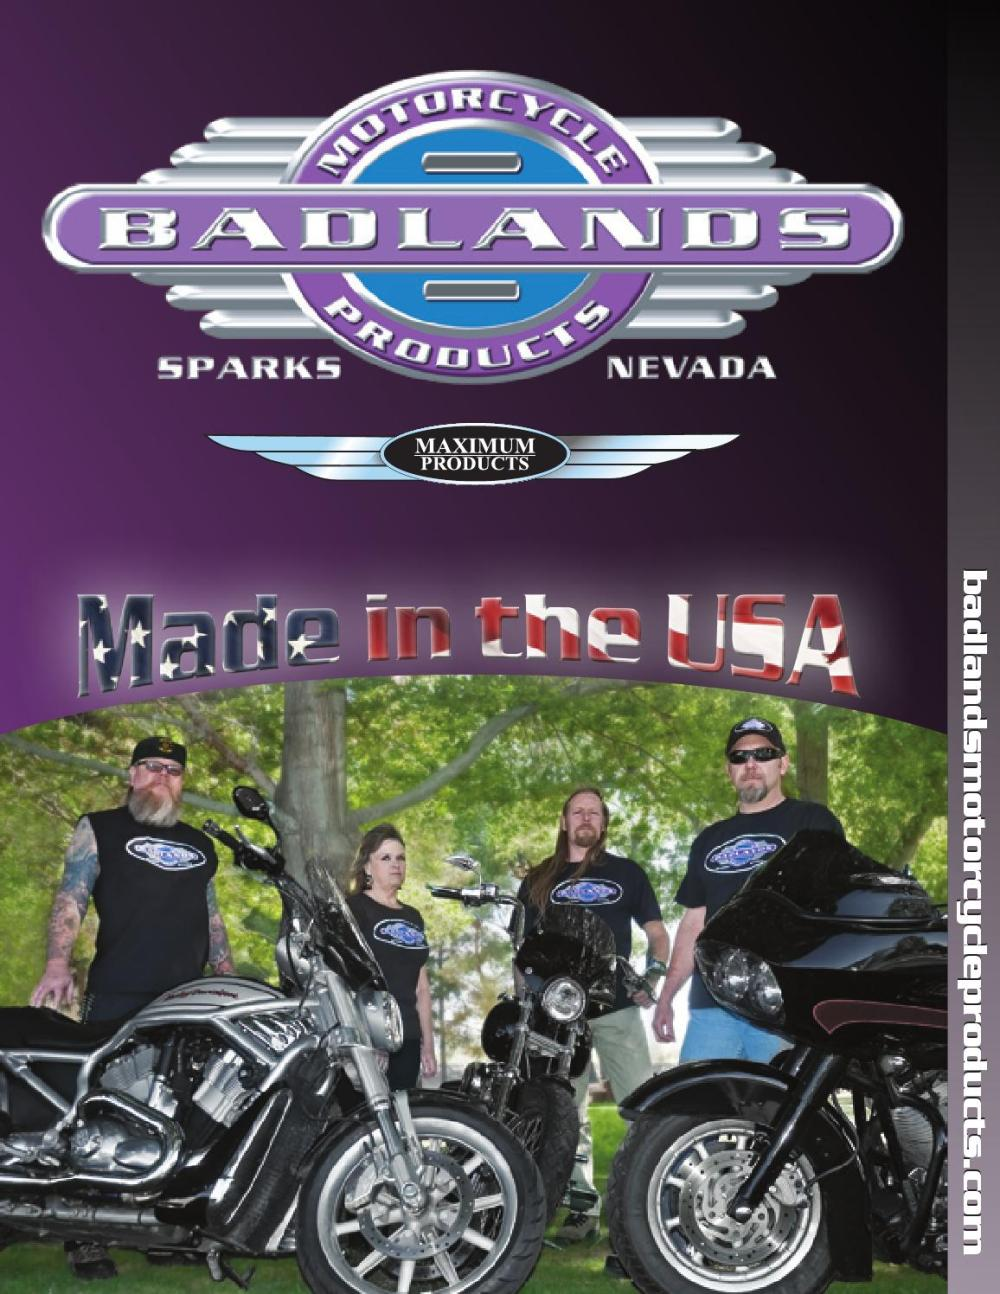 medium resolution of 2009 badlands motorcycle products catalog by pitbulls motorcycles issuu